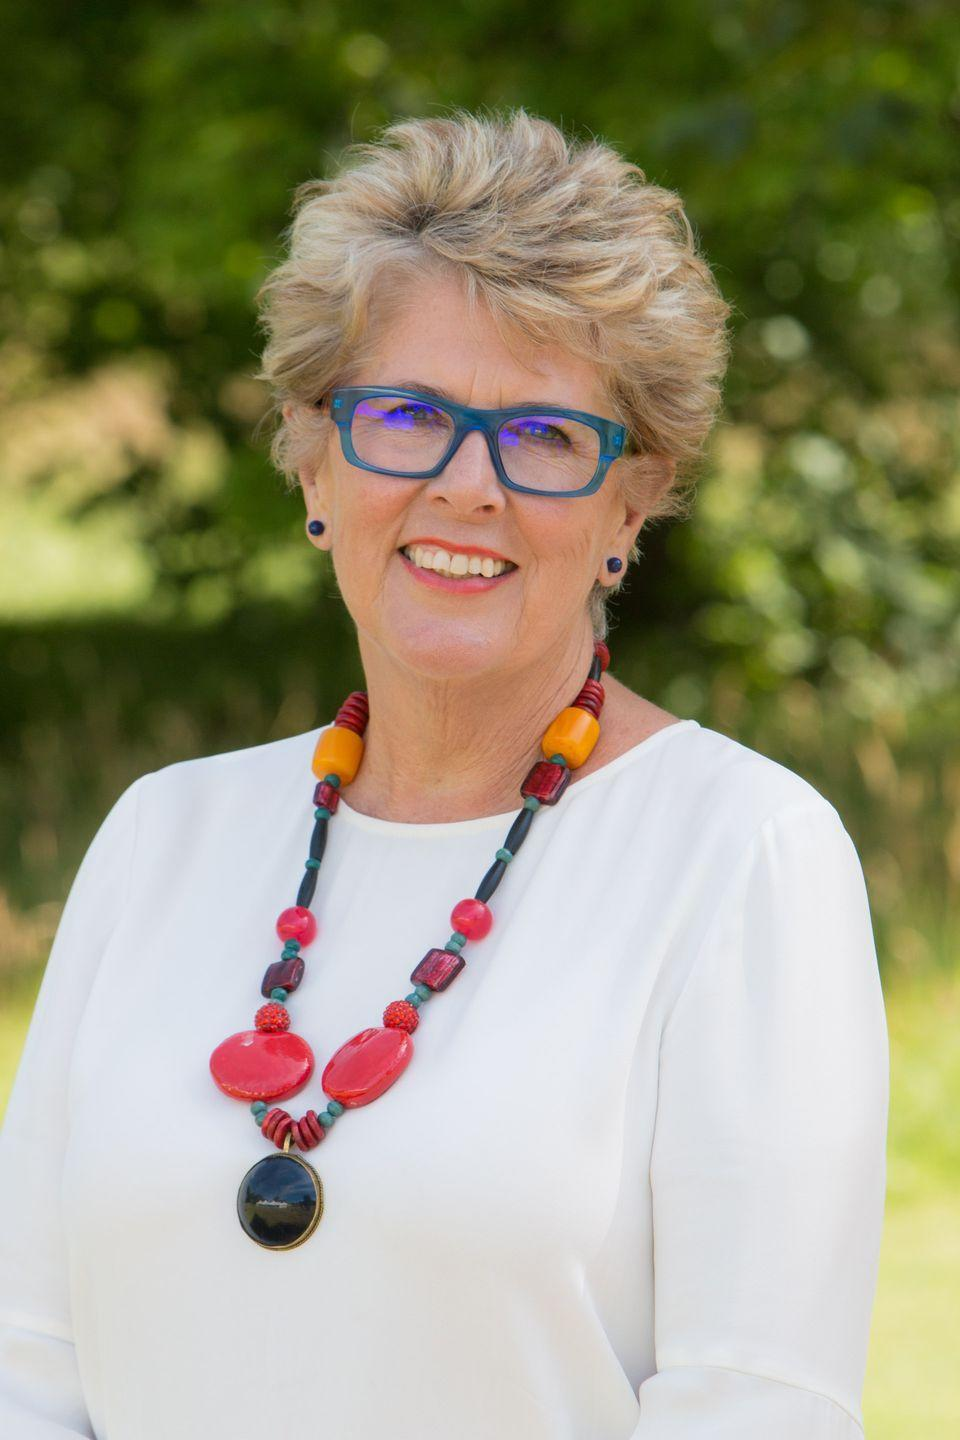 Photo credit: Prue Leith